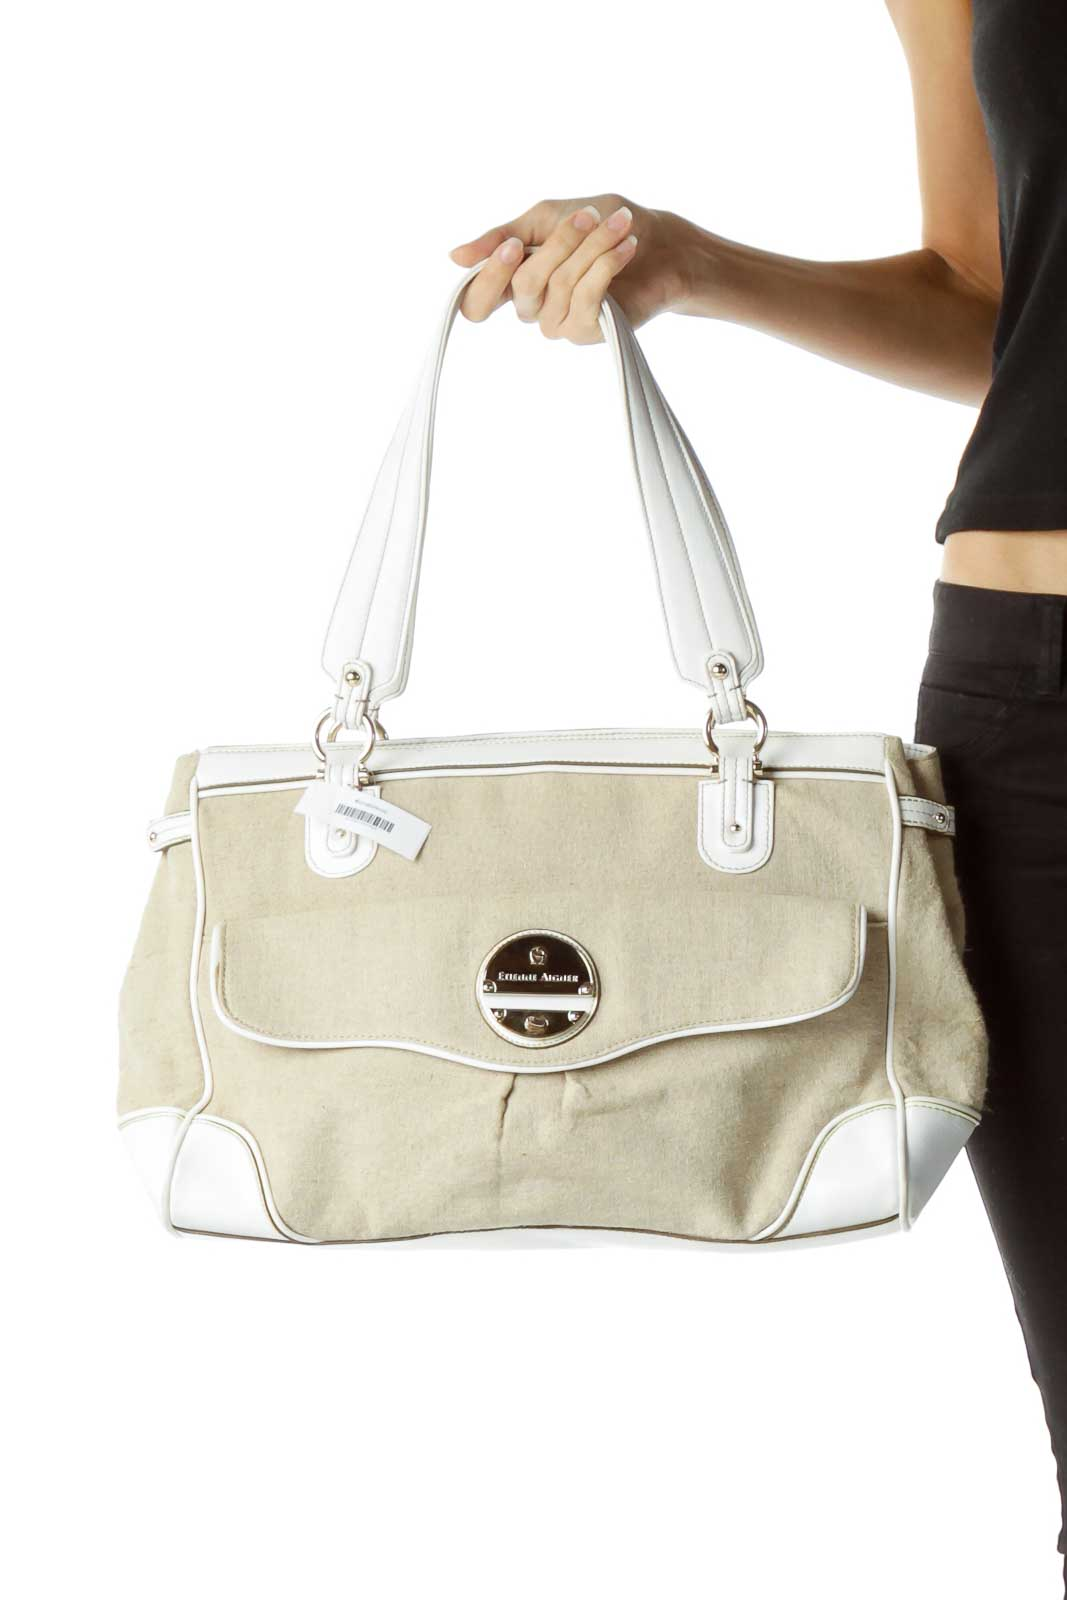 Beige Linen White Leather Handle Tote Front